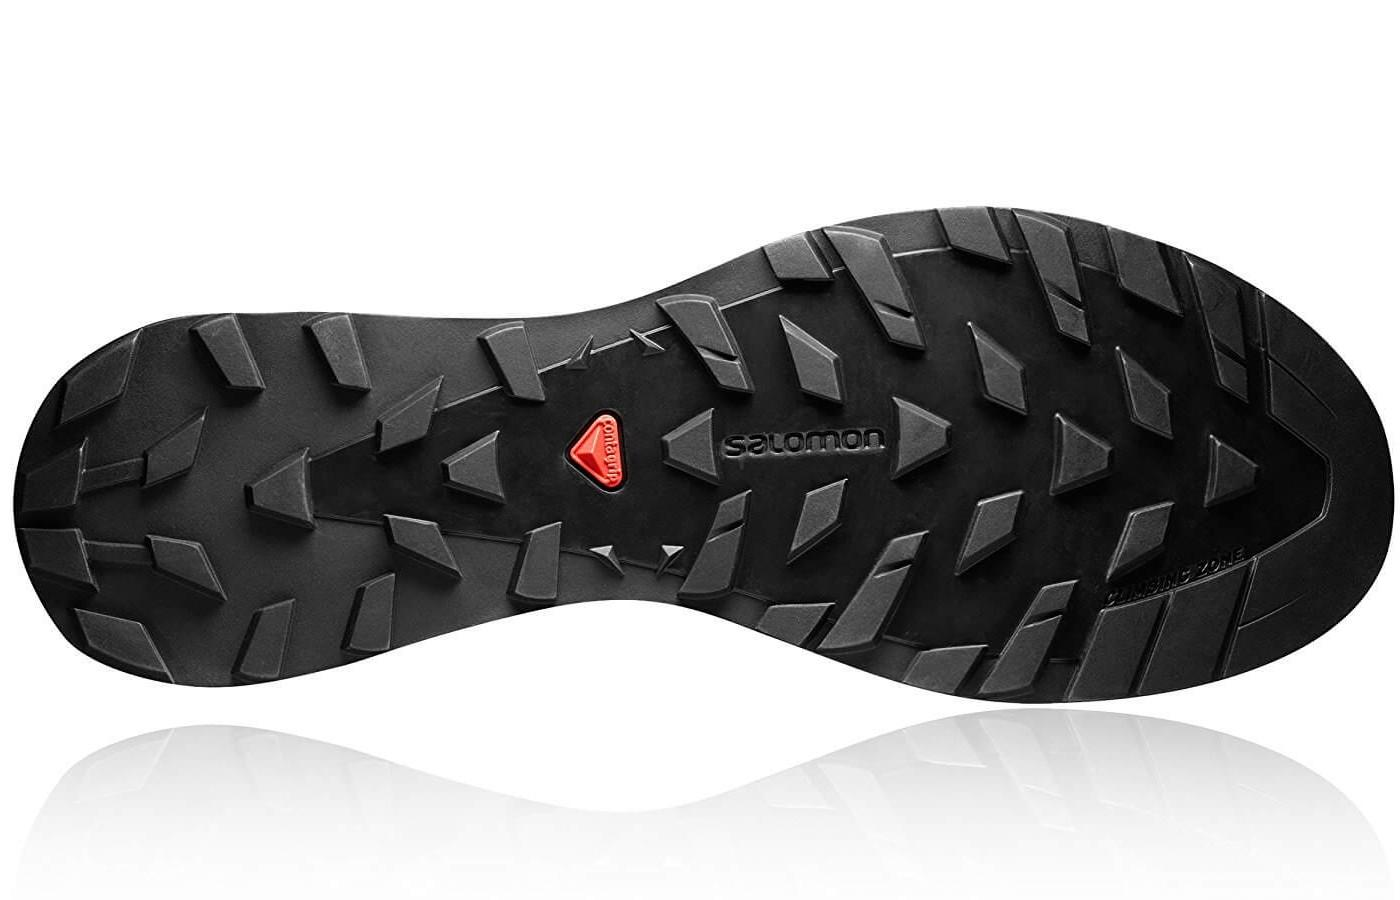 the outsole of the Salomon S-Lab XA Alpine features tenacious lugs for great traction